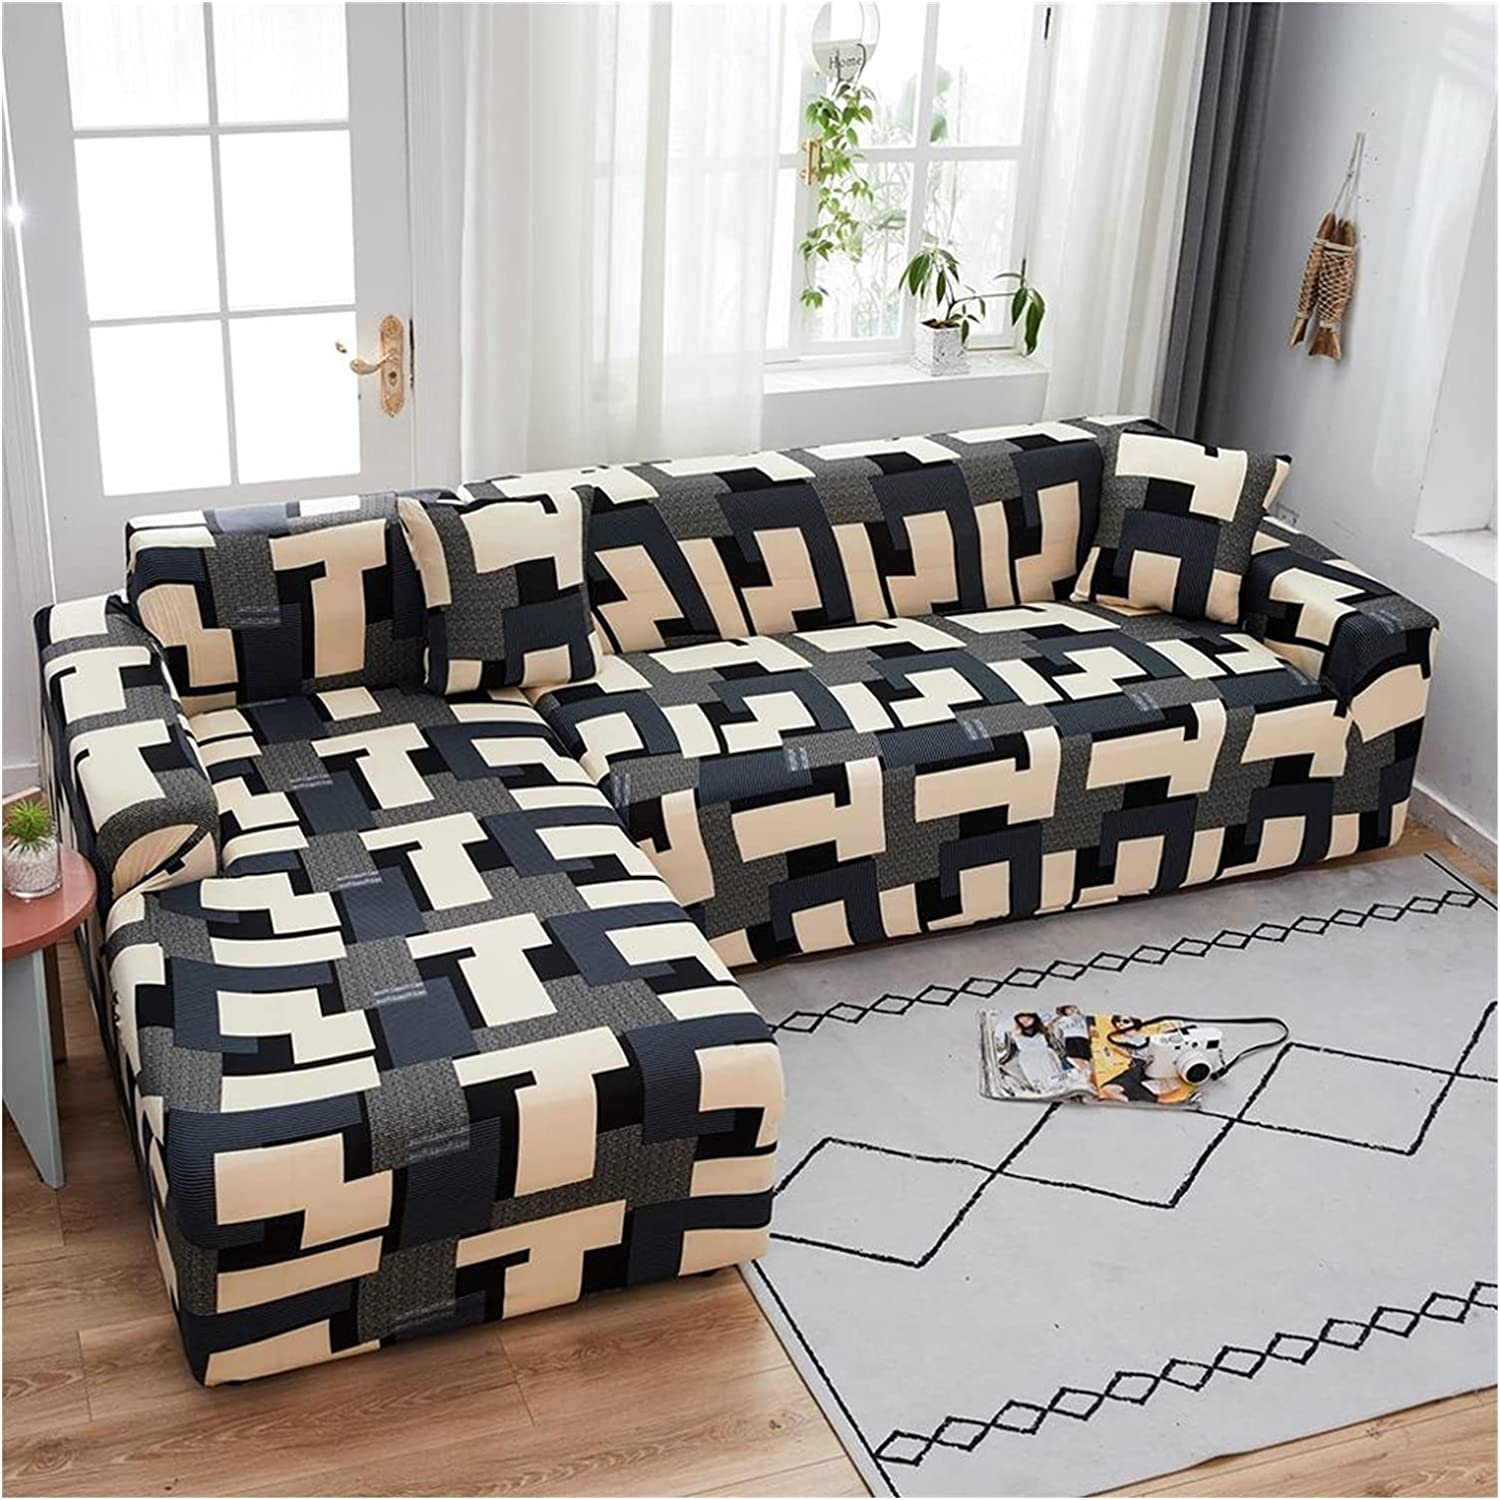 Sofa Cover Elastic Sectional Corner Slipcover Couch Max 90% OFF Max 57% OFF L-Shape